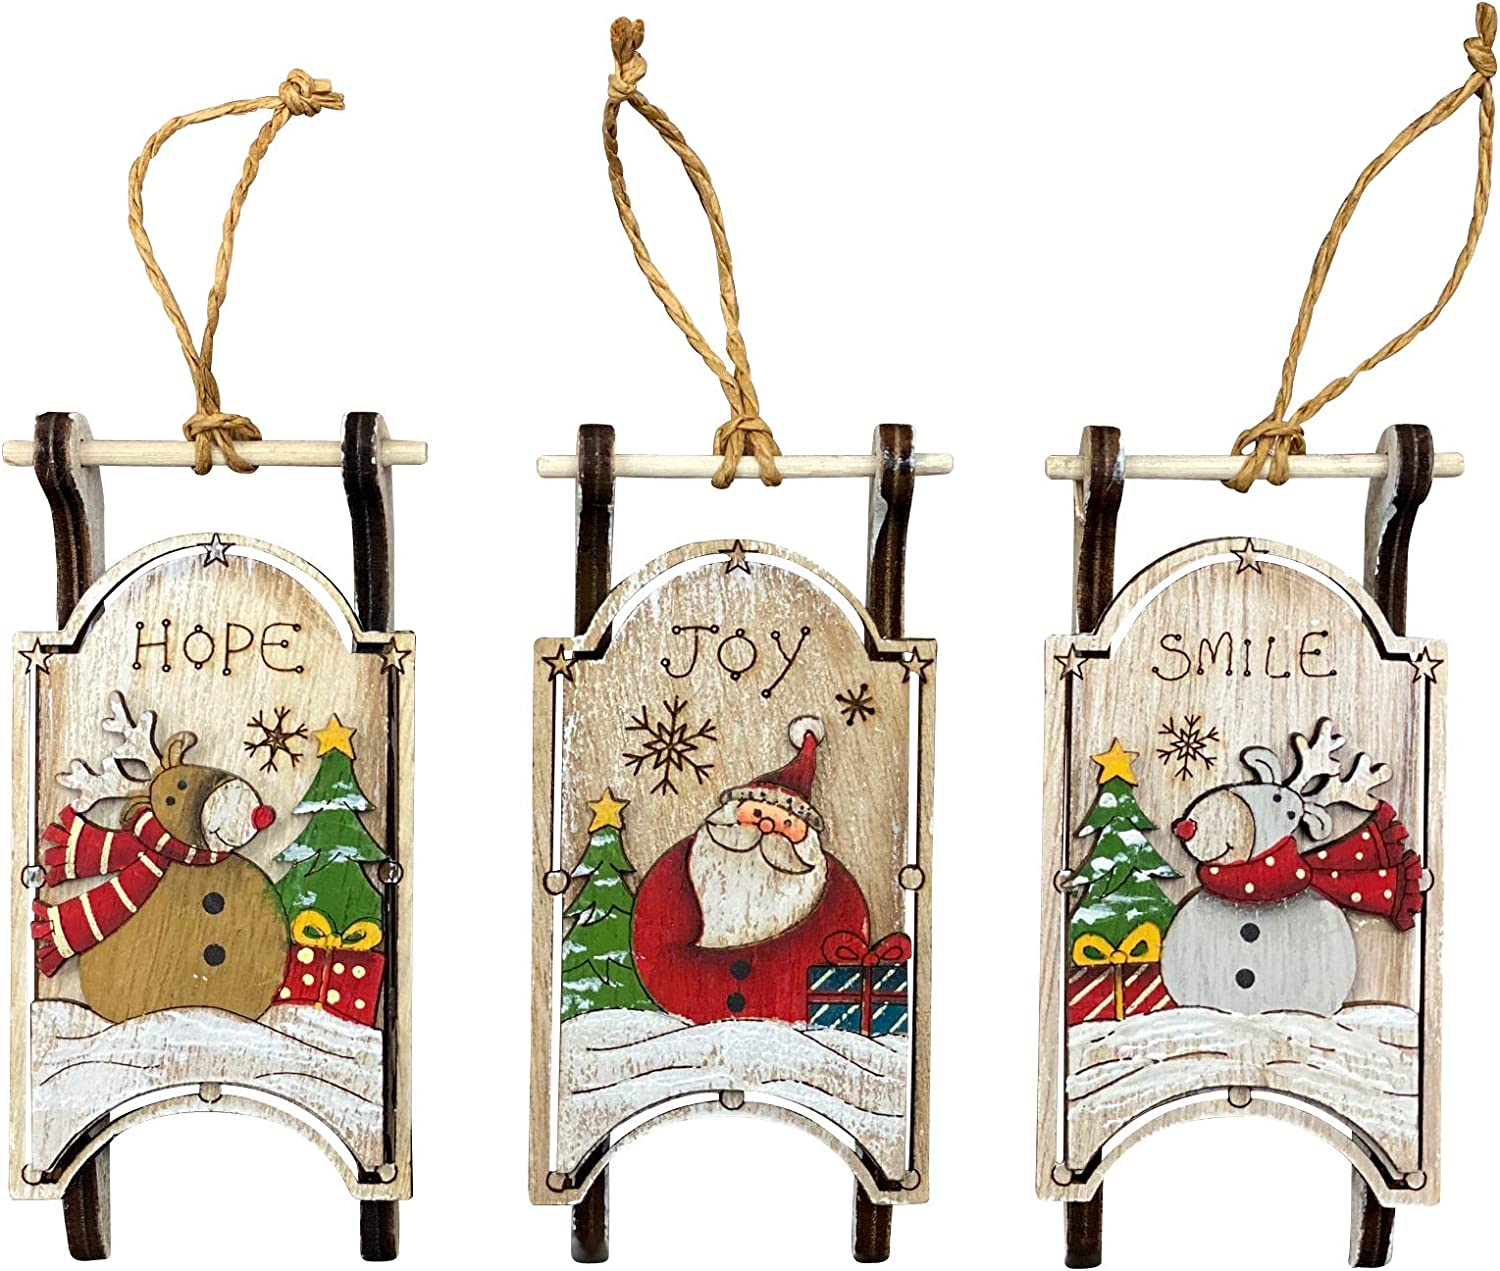 Christmas Sled Ornaments (Set of 3) Wooden Holiday Sleigh Tree Decorations - Hand Painted Farmhouse Christmas, Vintage Rustic Decorative Hanging Ornaments or Indoor Wall Decor (Reindeer)